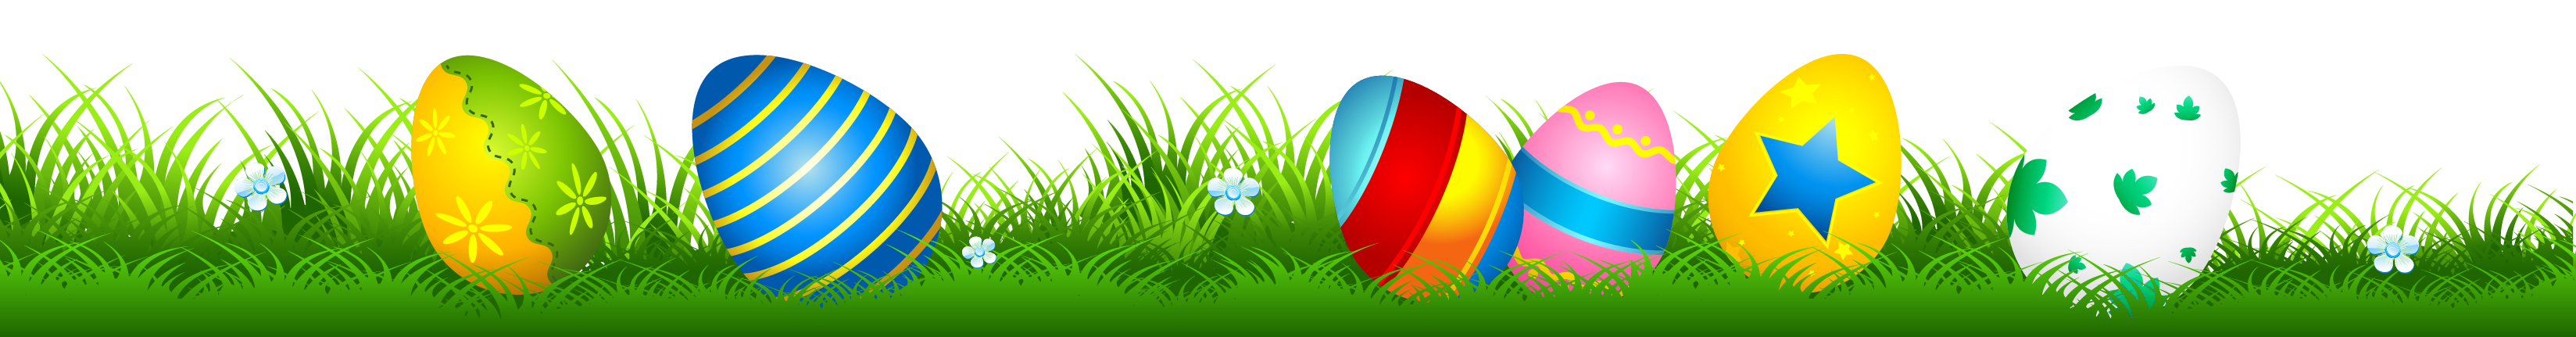 eggs vector grass